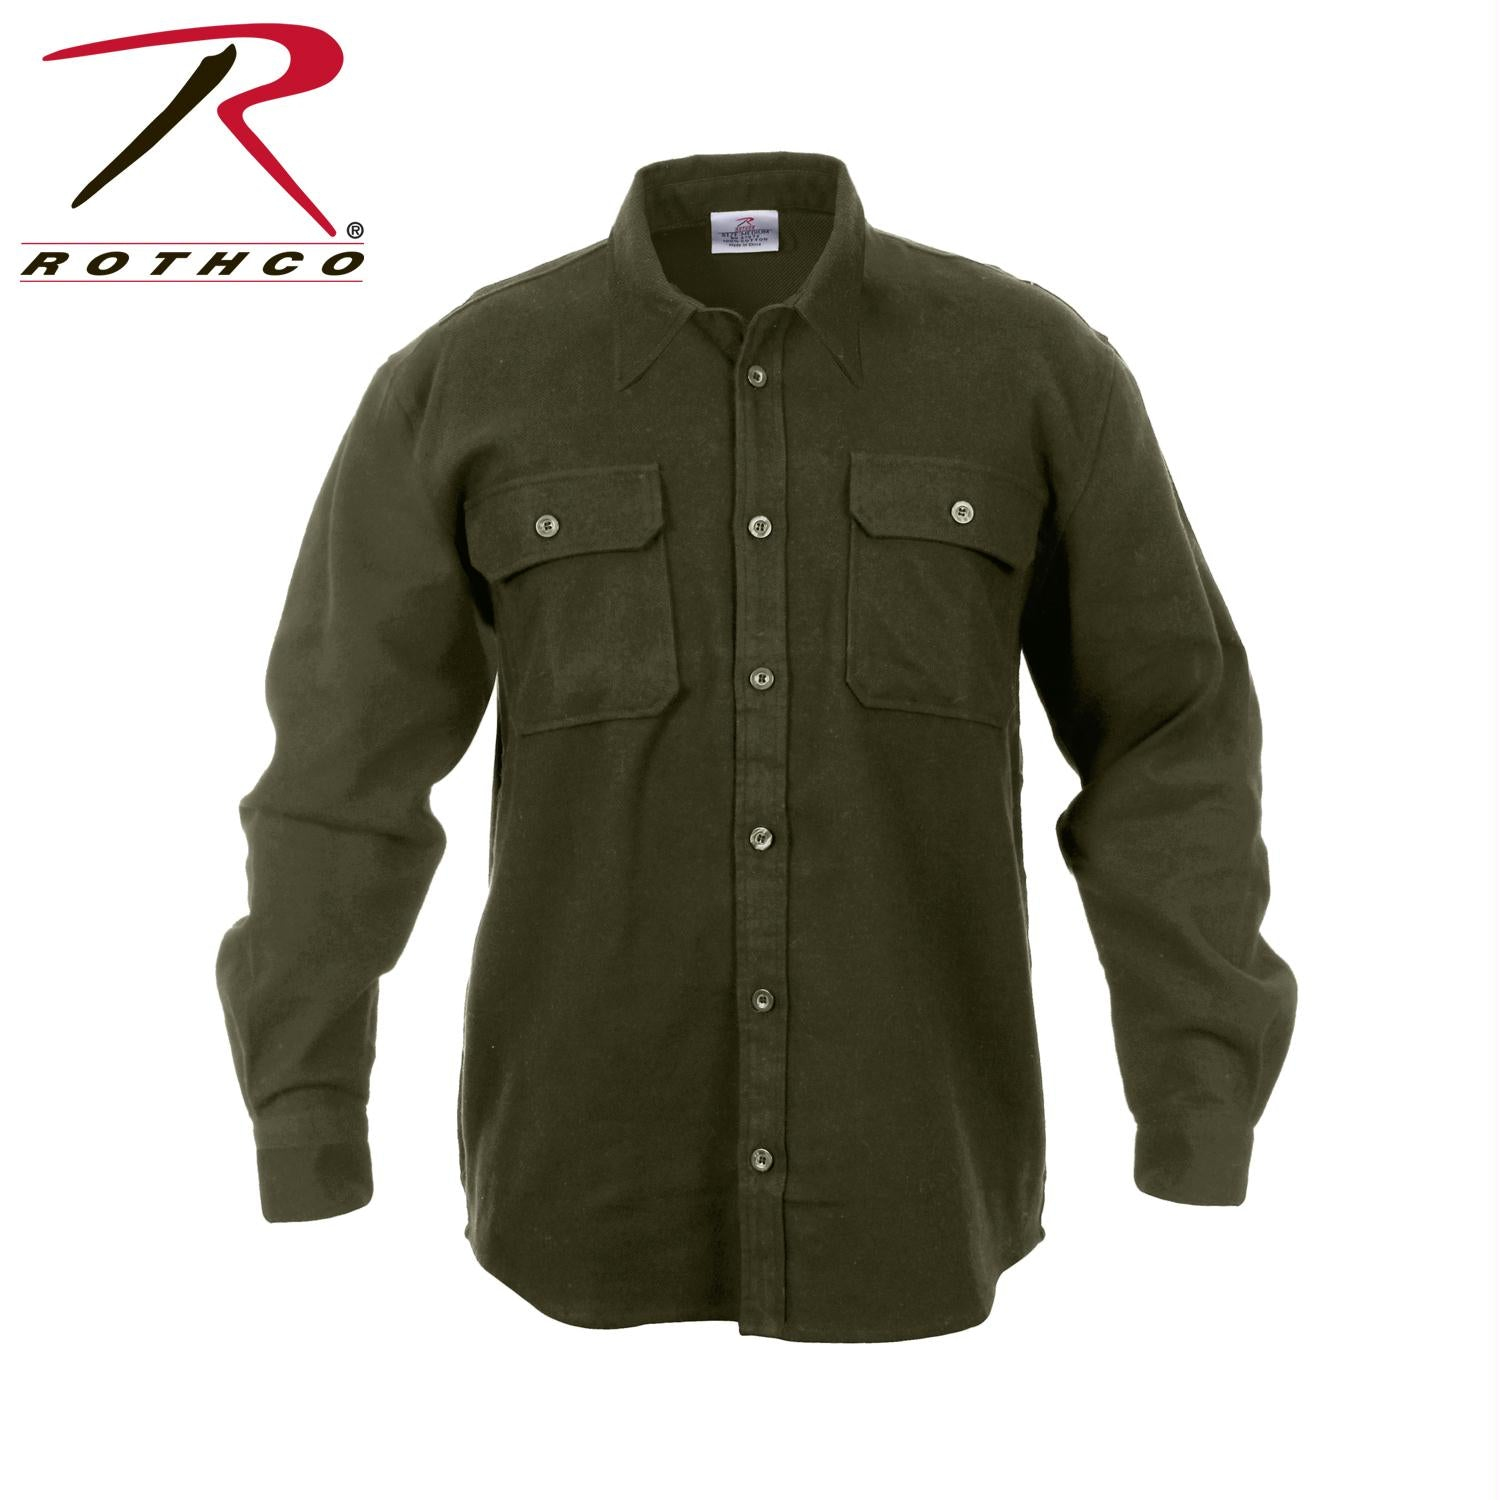 Rothco Heavy Weight Solid Flannel Shirt - Olive Drab / M